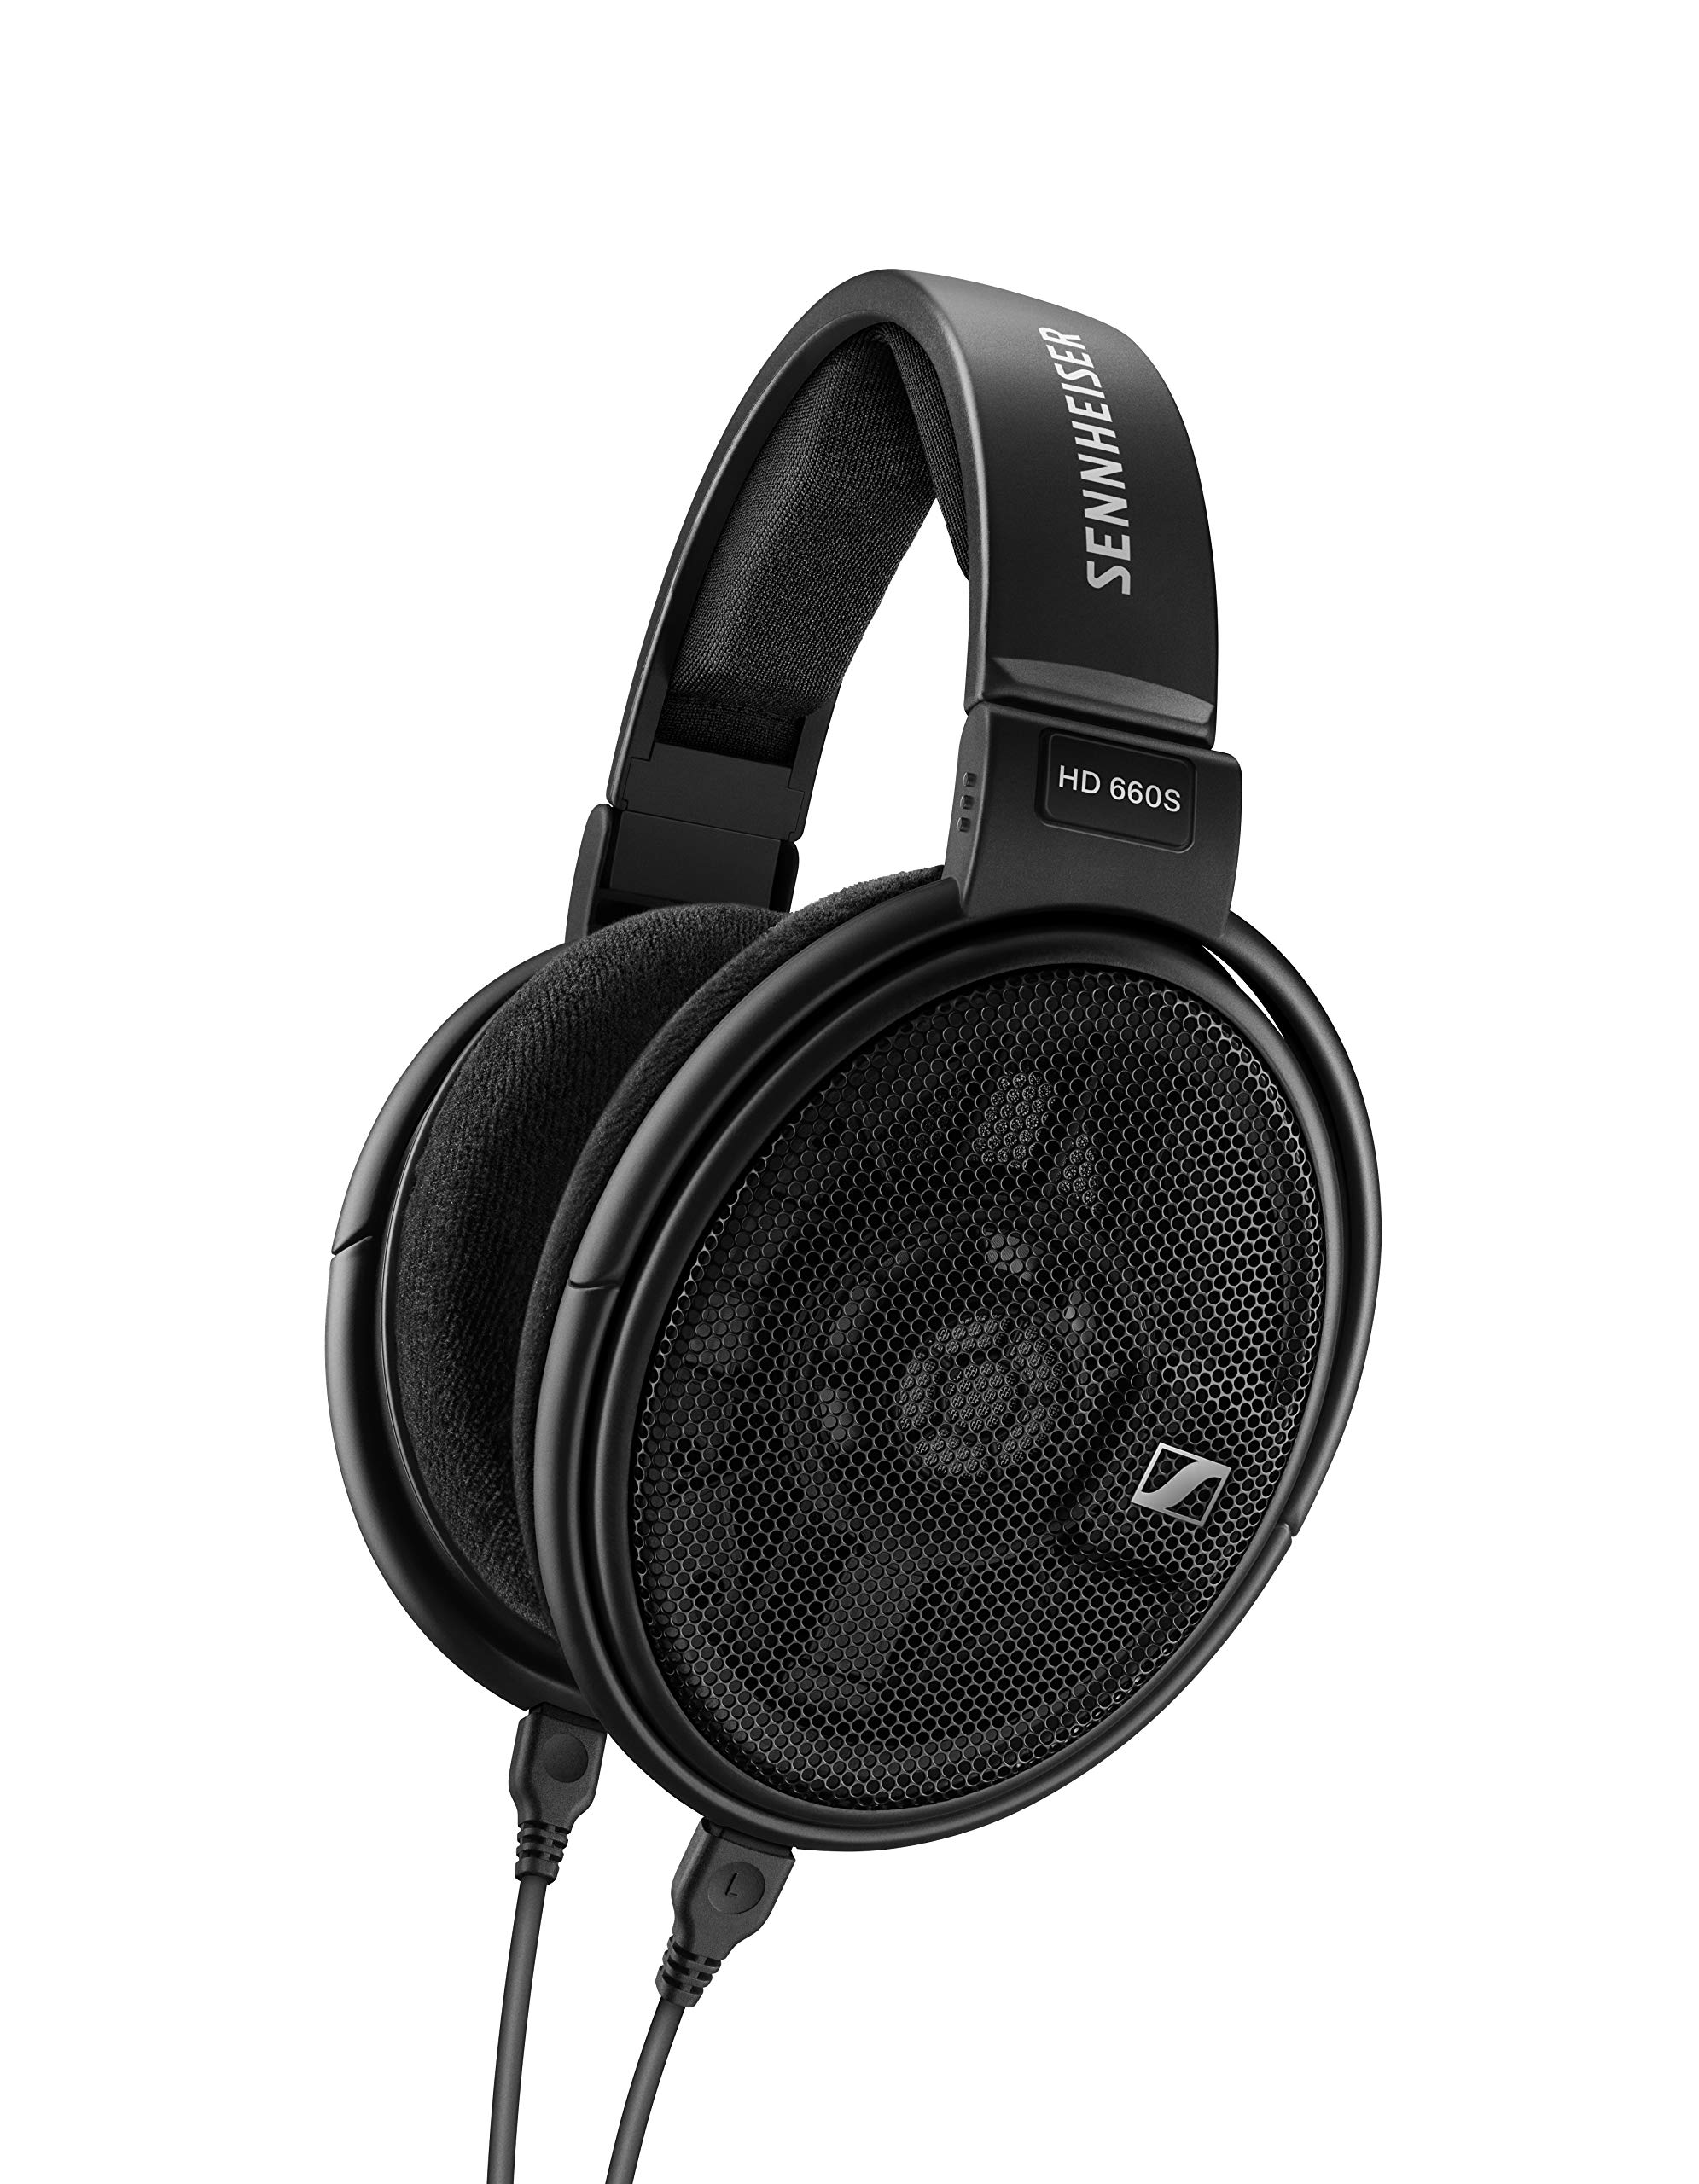 Sennheiser HD 660 S Open, Dynamic Lightweight Circumaural Headphones with Low Impedence and Improved Transducer Design for Audiophiles, Black